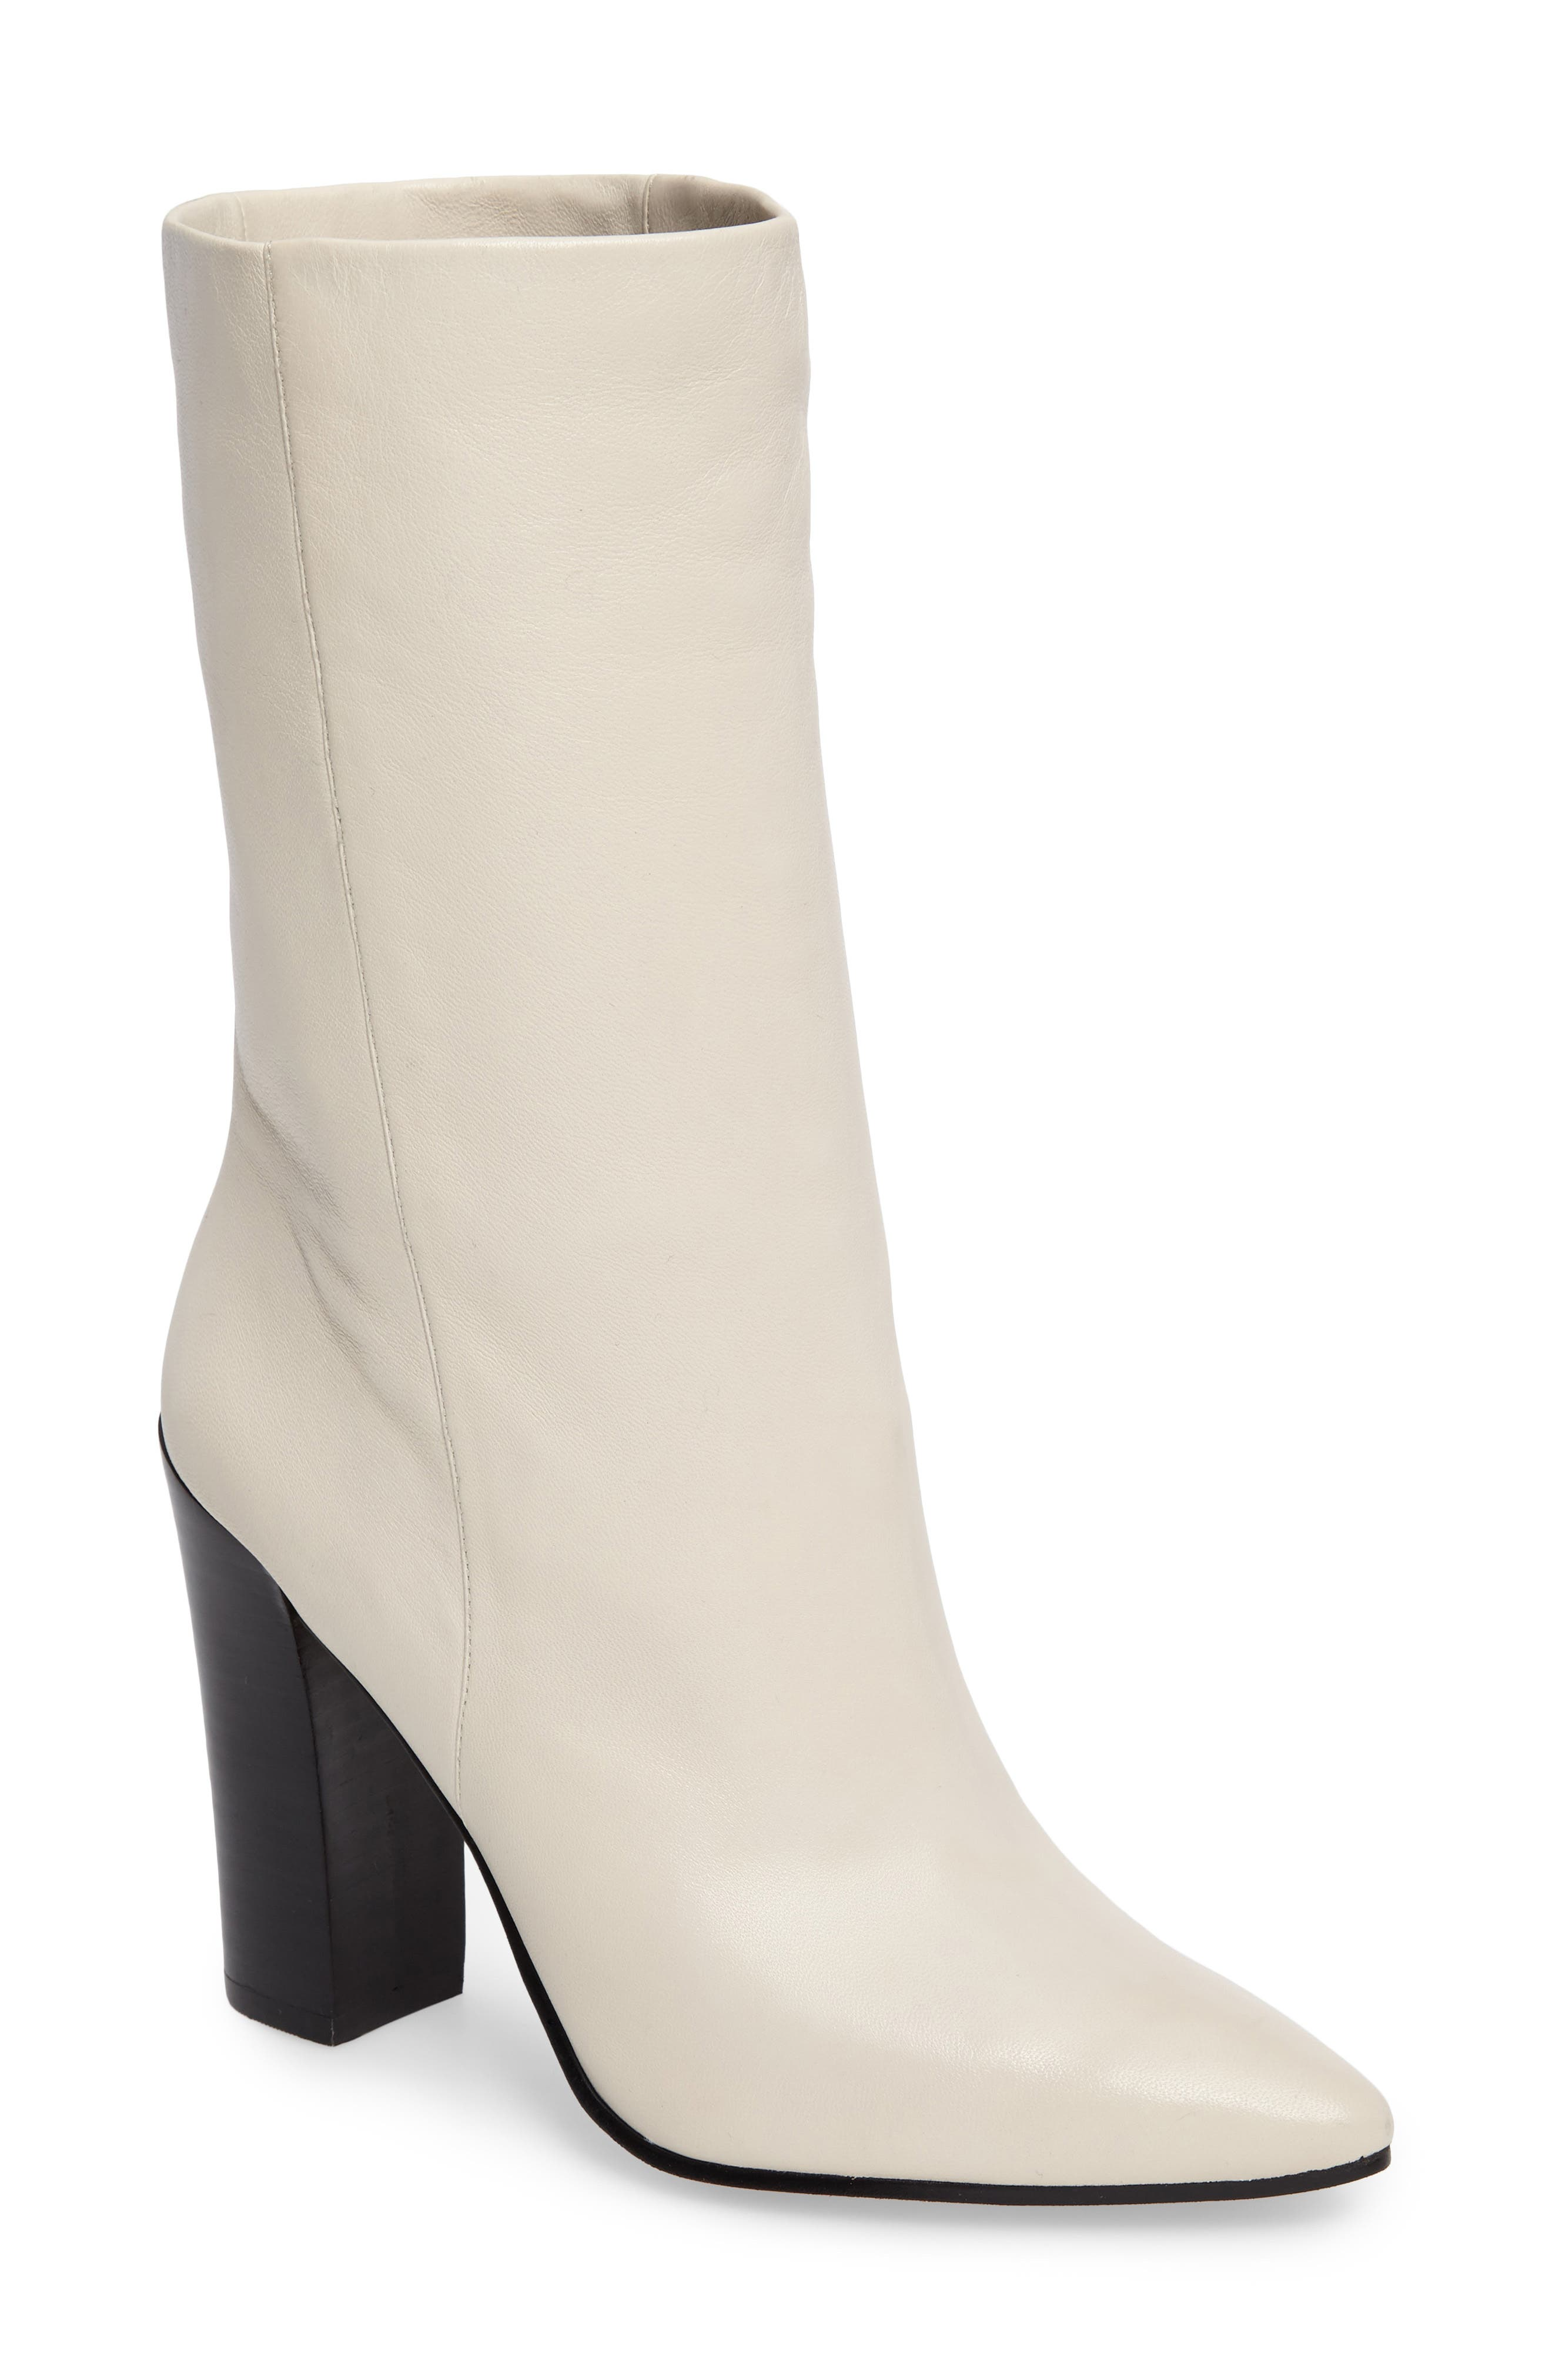 Main Image - Dolce Vita Ethan Pointy Toe Bootie (Women)